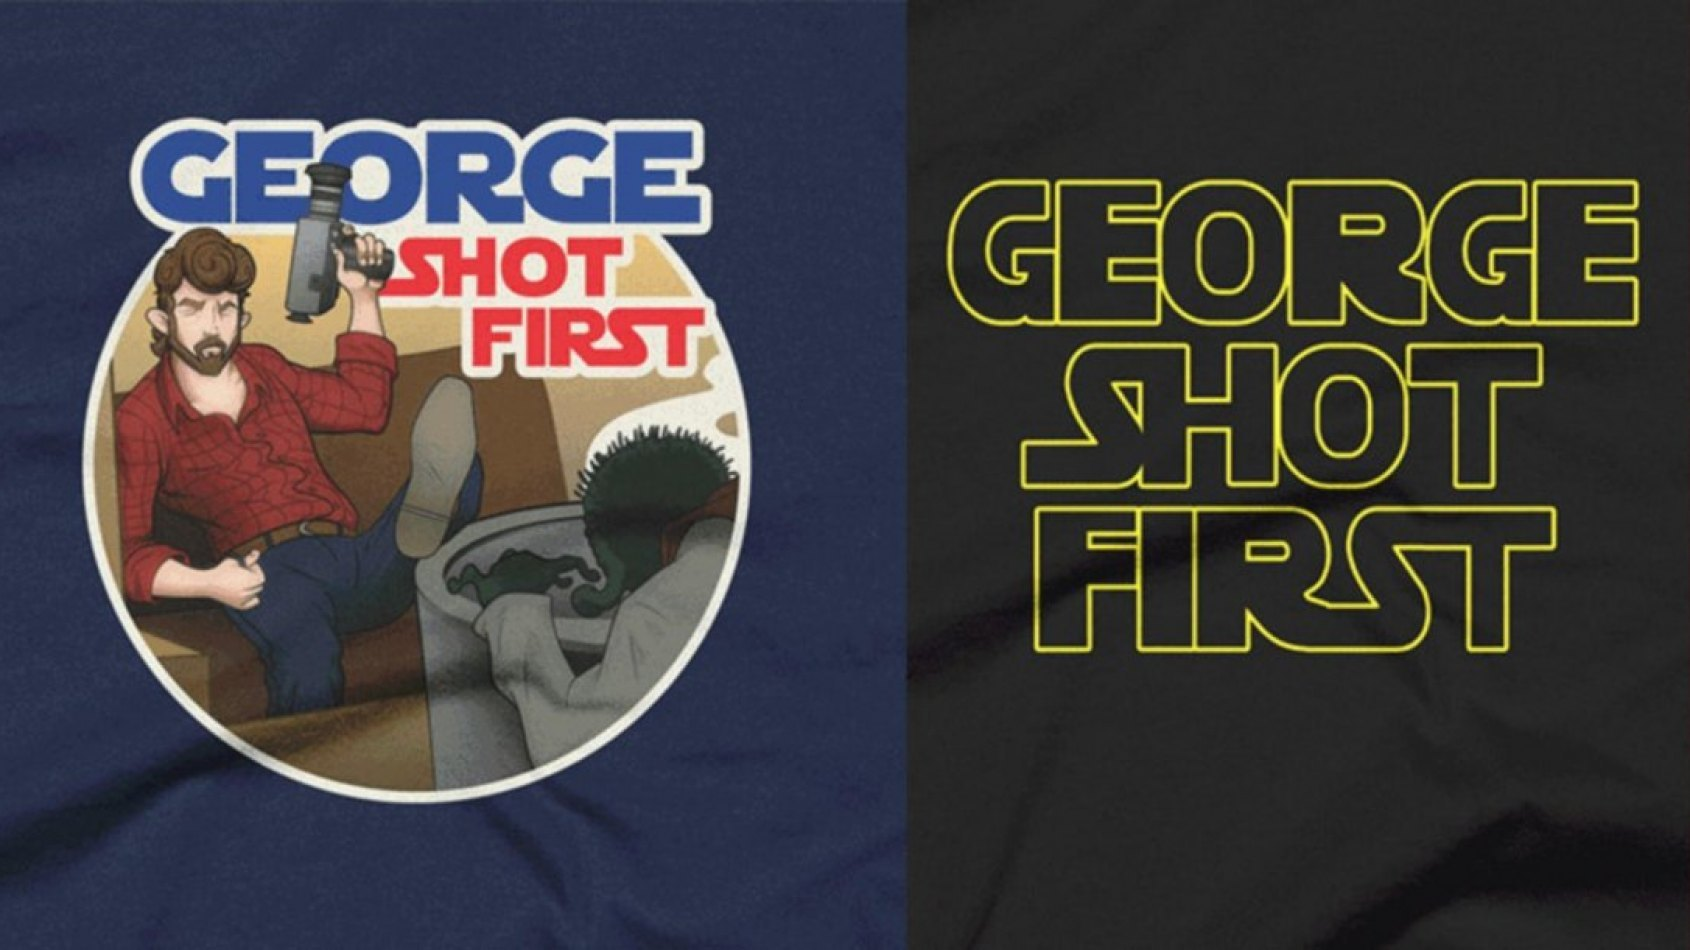 George Shot First : Le nouveau fan club de George Lucas